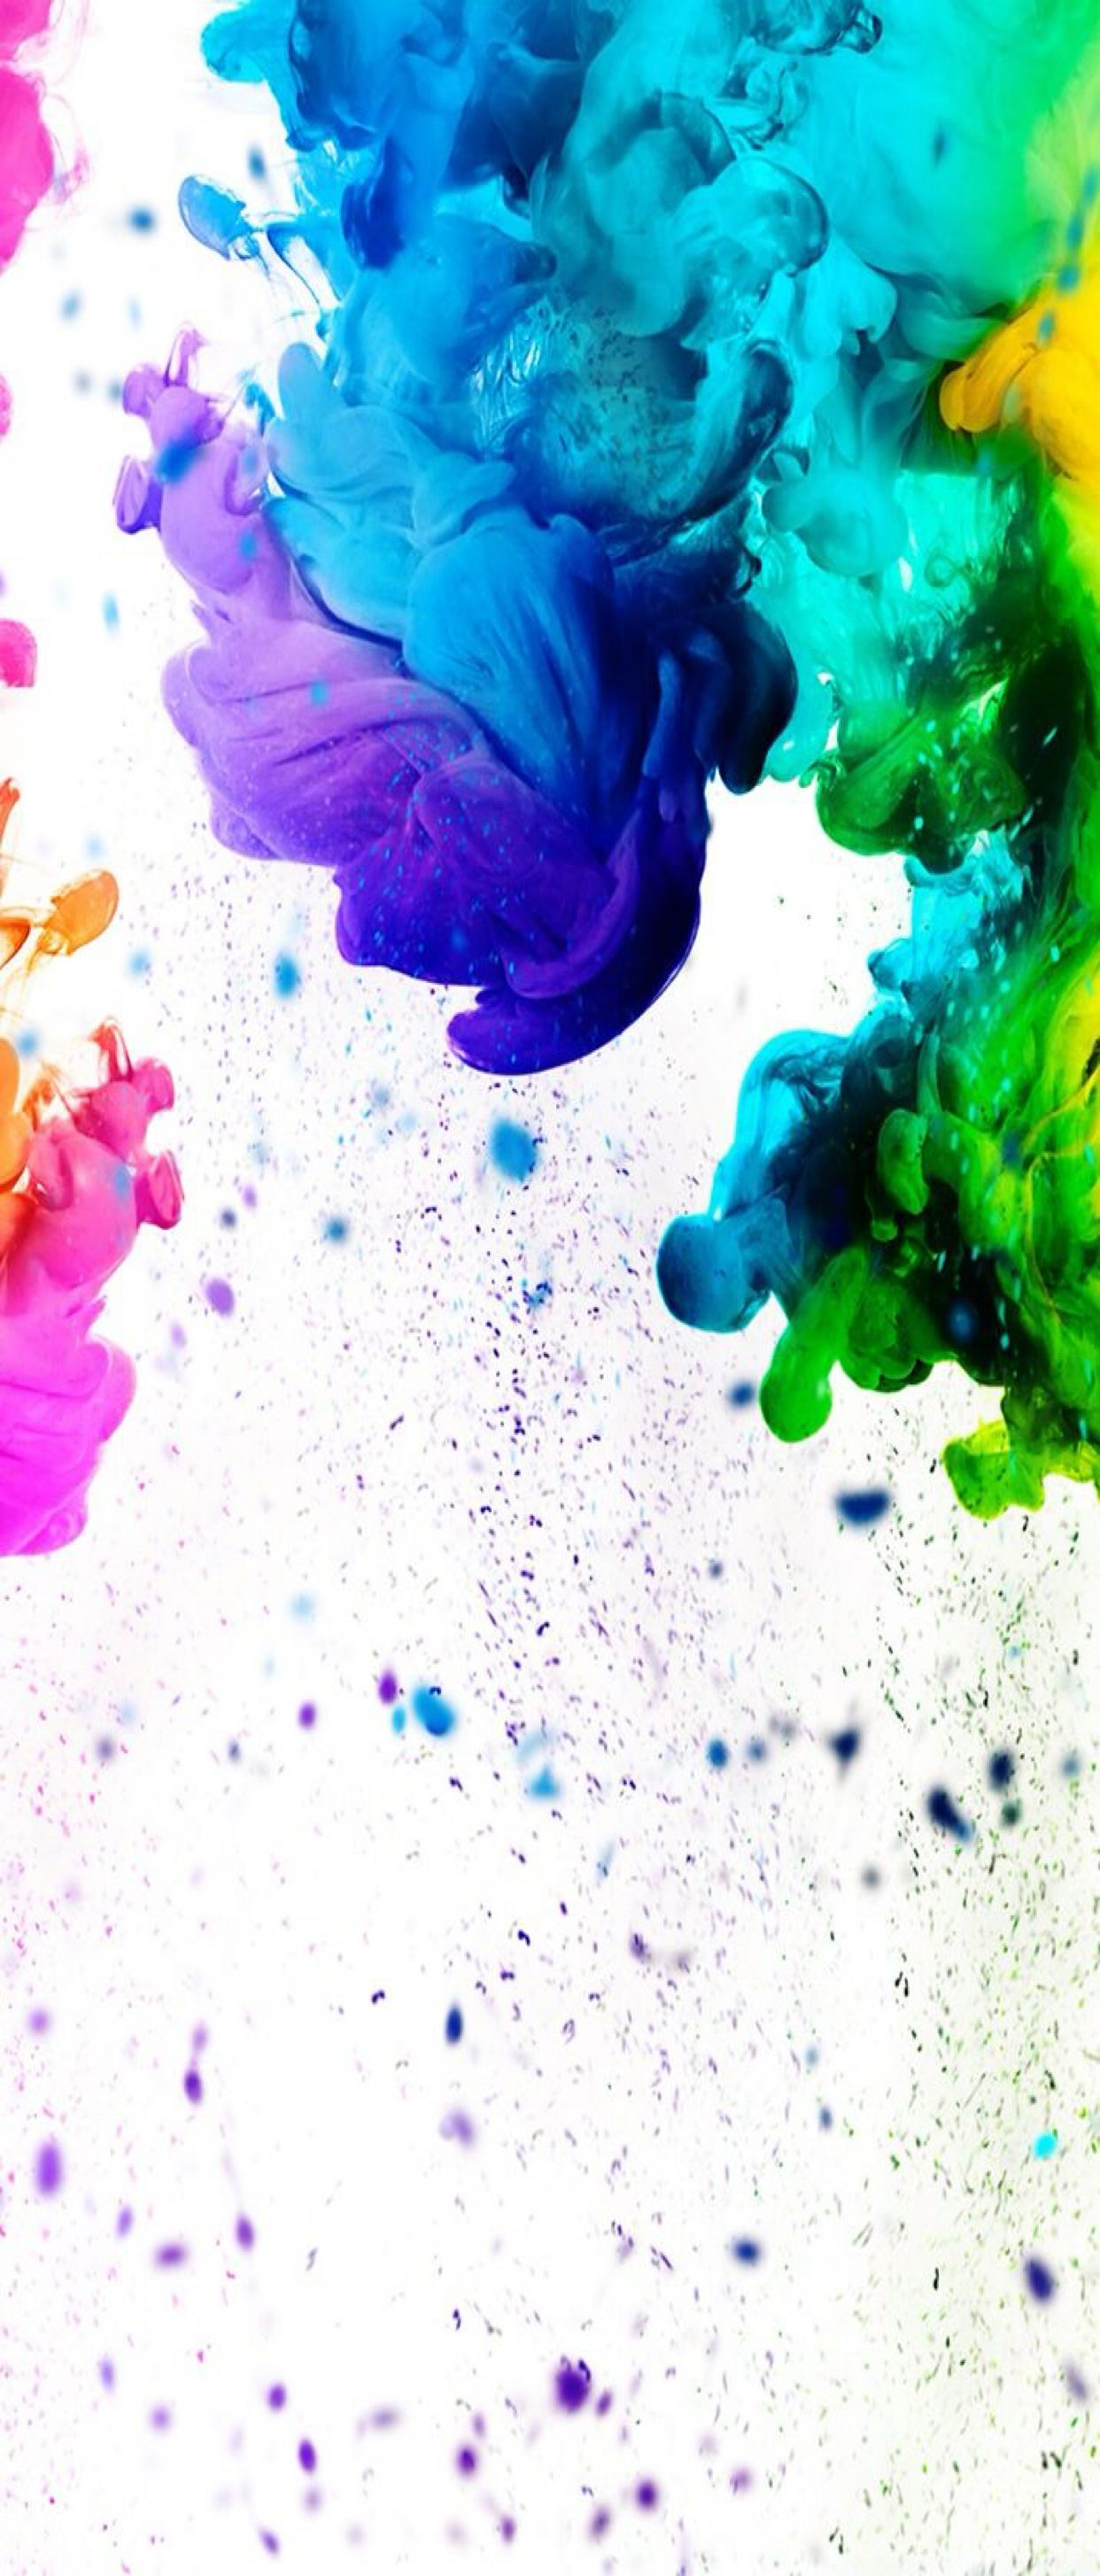 What color for liquid wallpaper to choose